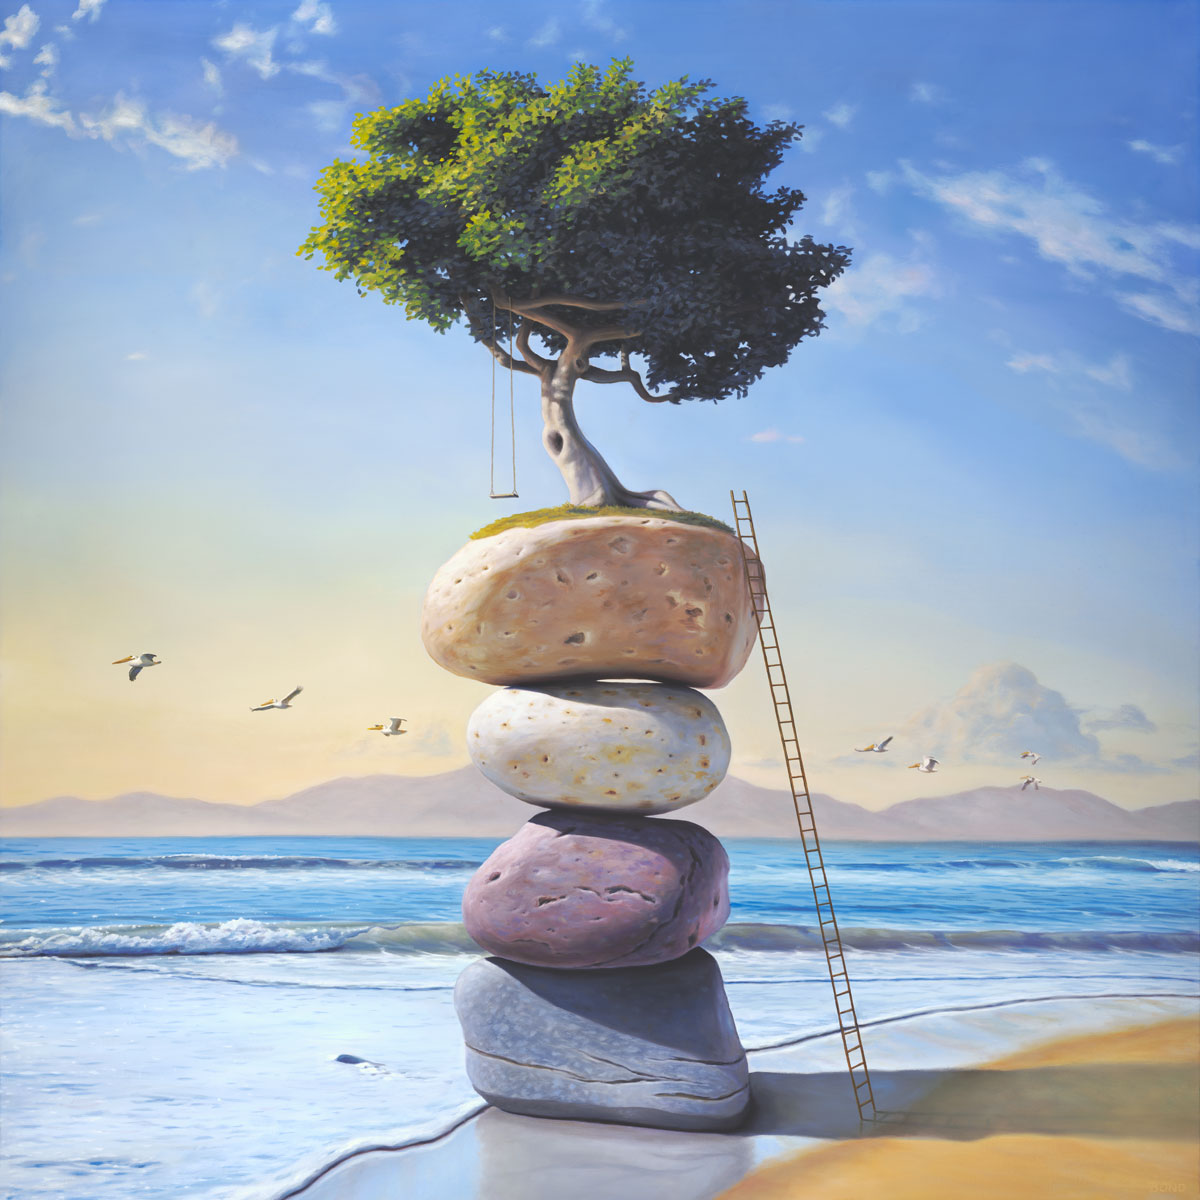 A Hymn to the Summer of My Long Ago, art wtih painting of a tree and tree swing perched on top of stacked stones on the beach with a ladder,  art with pelican bird, art with stacked stones, art with cairn rocks, art wtih flying swing in the sky, art metaphors about remembering memory memories childhood and structure, clouds, ocean, art about precarious balance, soulful uplifting inspirational art, soul stirring illusion art, romantic art,  surrealism, surreal art, dreamlike imagery, fanciful art, fantasy art, dreamscape visual, metaphysical art, spiritual painting, metaphysical painting, spiritual art, whimsical art, whimsy art, dream art, fantastic realism art, magic realism oil painting by Paul Bond